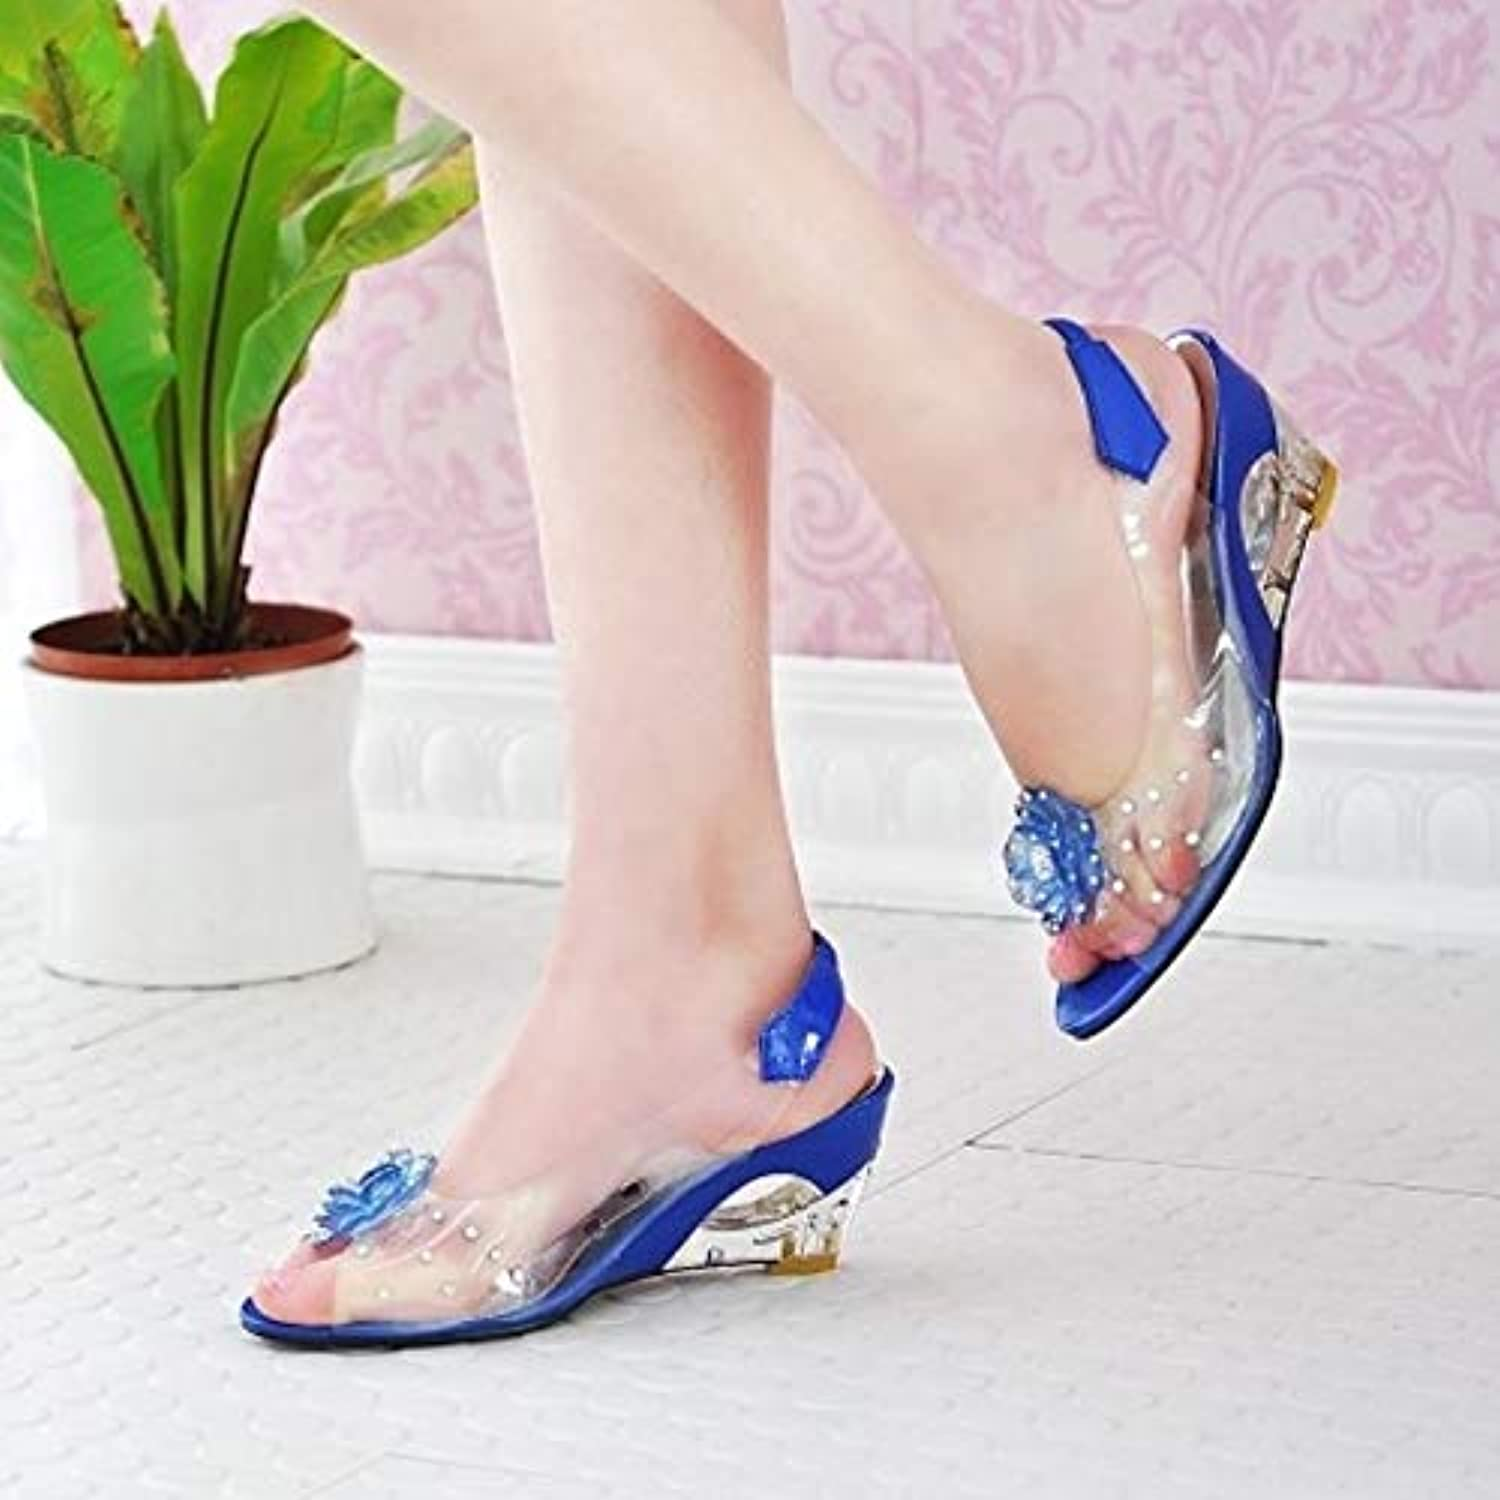 Size 33-43 New Summer Sandals Women Peep Open Toe Wedge Sandals with Flowers Sweet Jelly shoes Woman shoes for Lady,bluee,US12